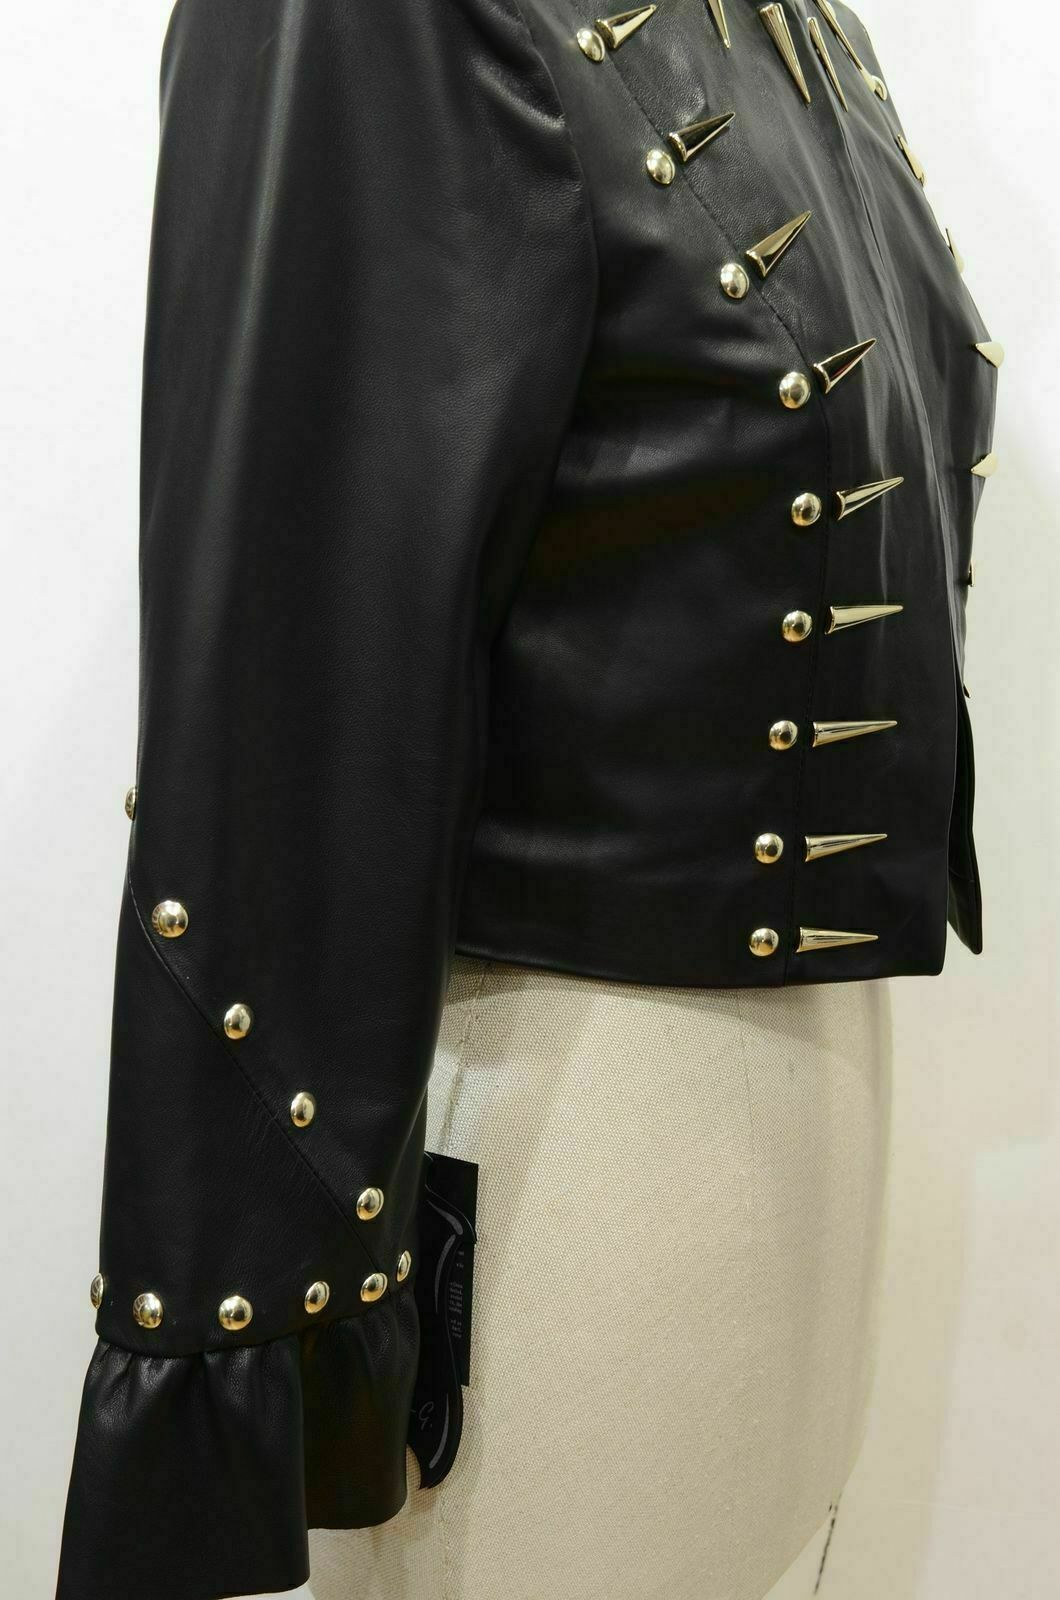 Woman Black Silver Long Spiked Studded Punk Rock Biker Leather Jacket Jackets Maker